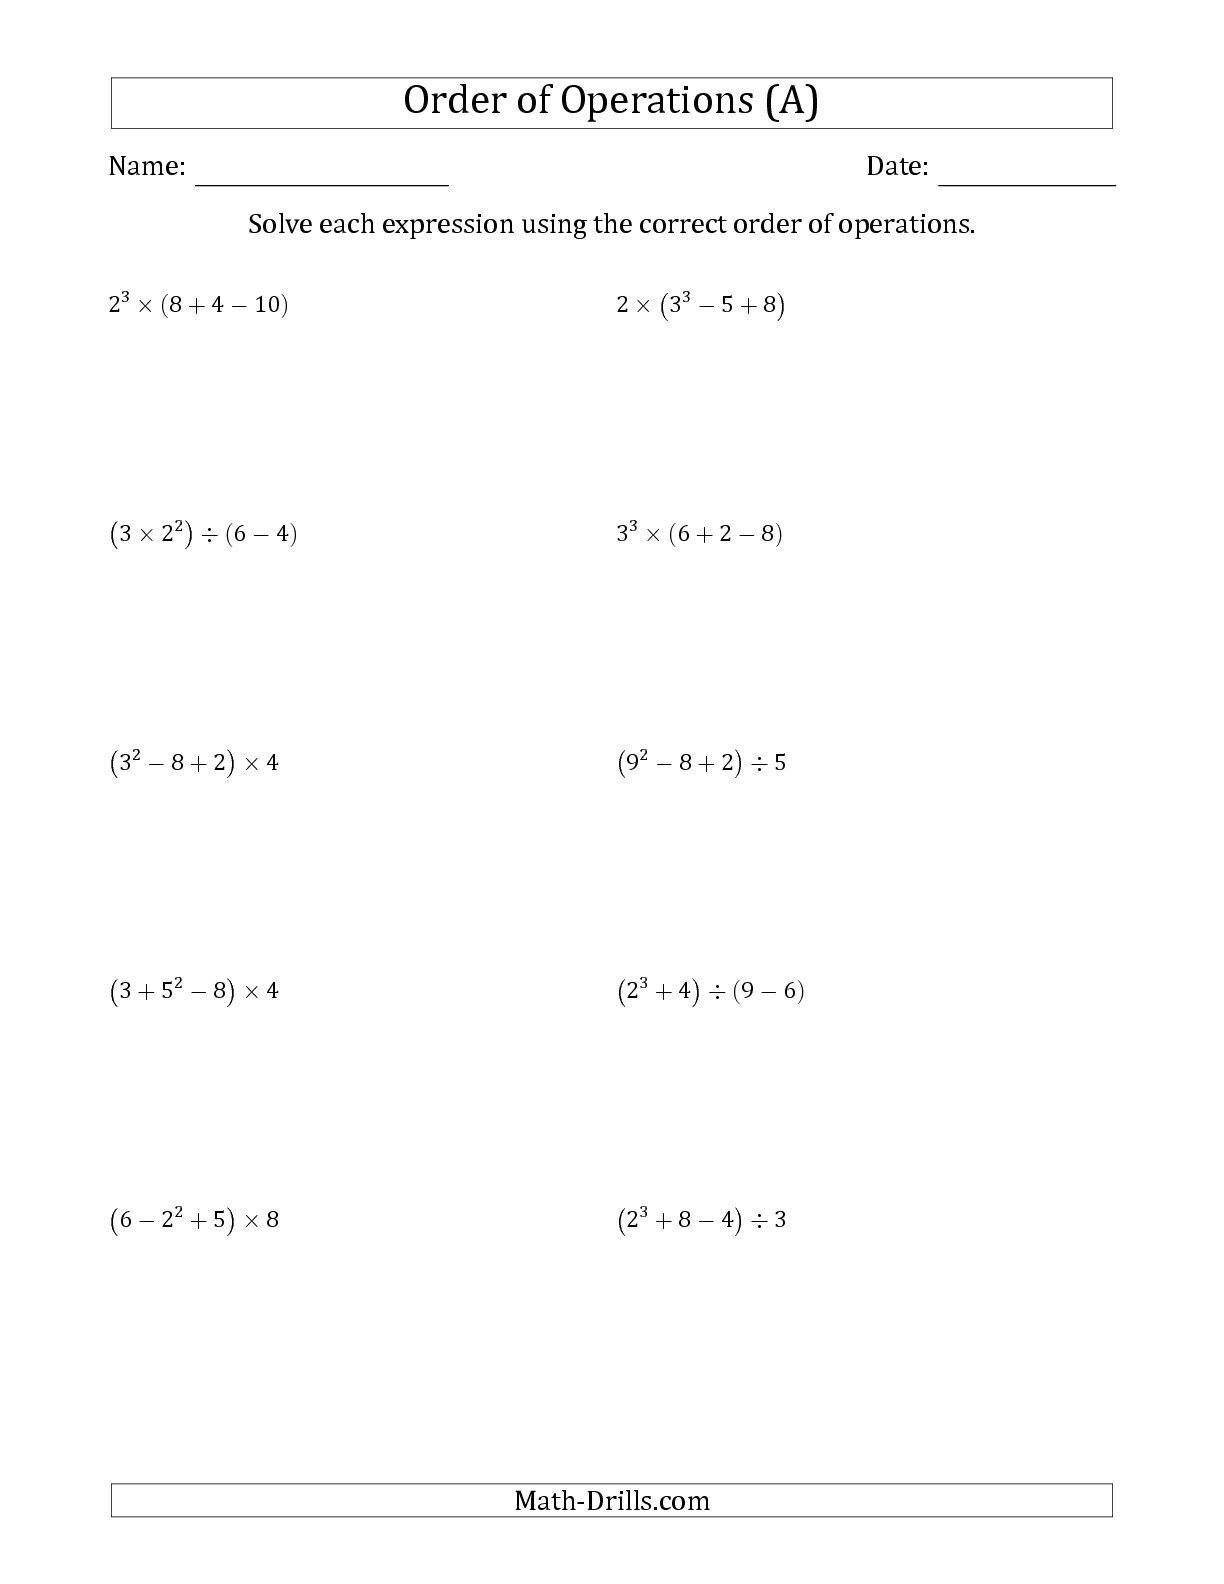 Worksheets Mixed Operations With Decimals Worksheet improved the order of operations with whole numbers four steps a math worksheet from page at math